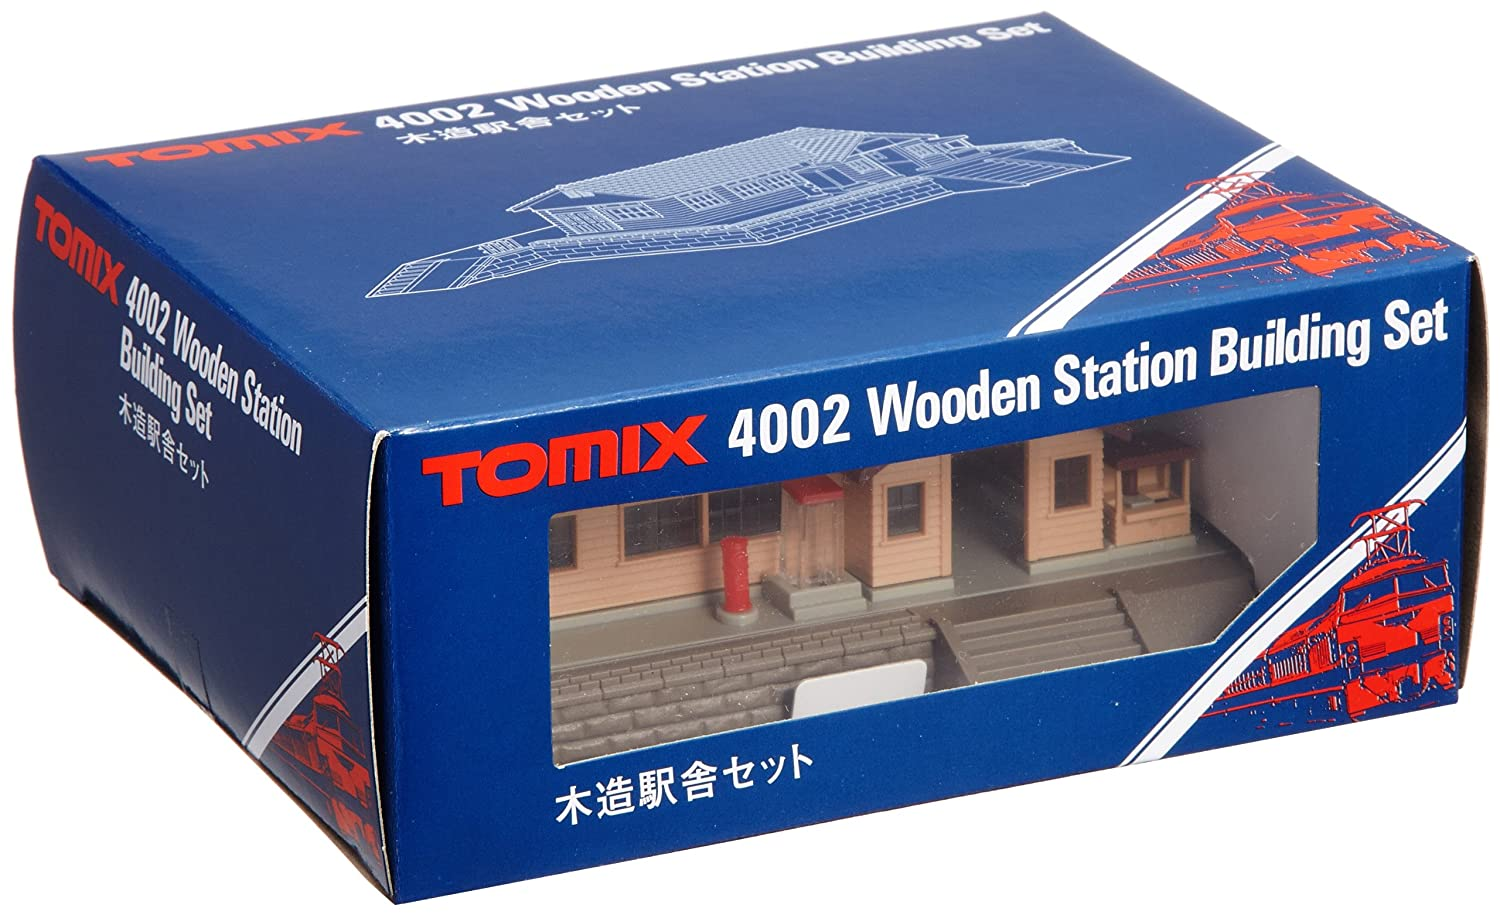 TOMIX N gauge wooden station building set 4002 by Tomytec